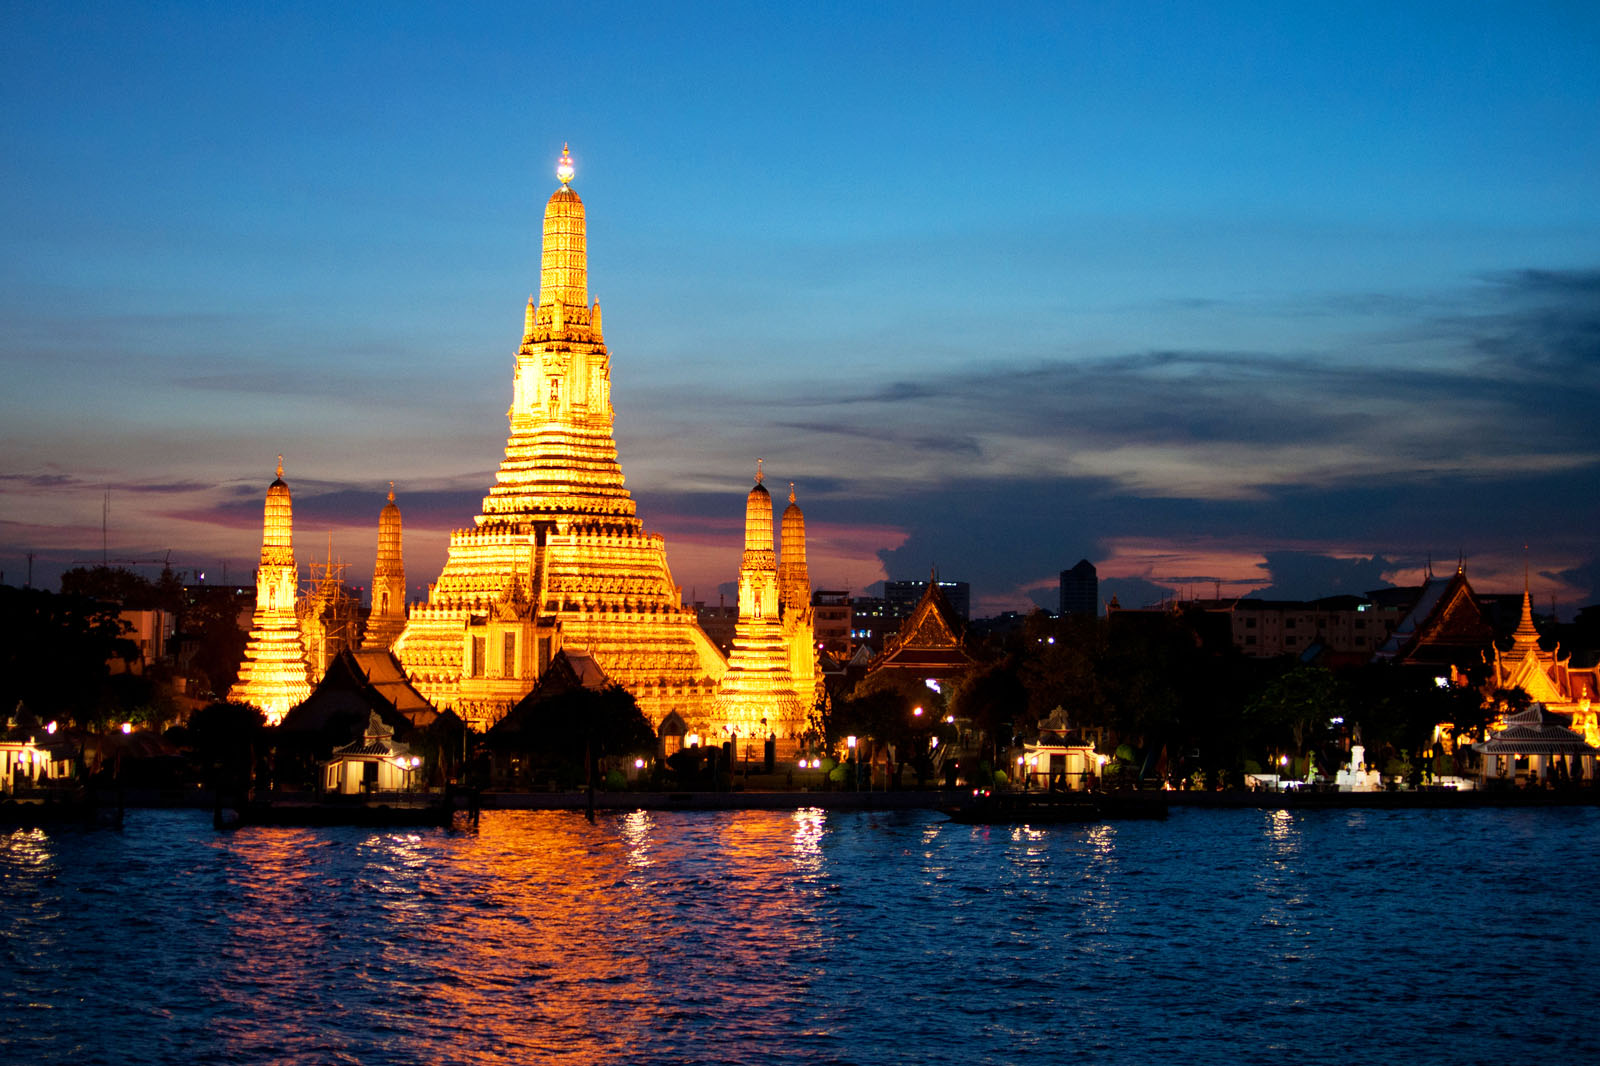 Wat Arun: The Temple of Dawn